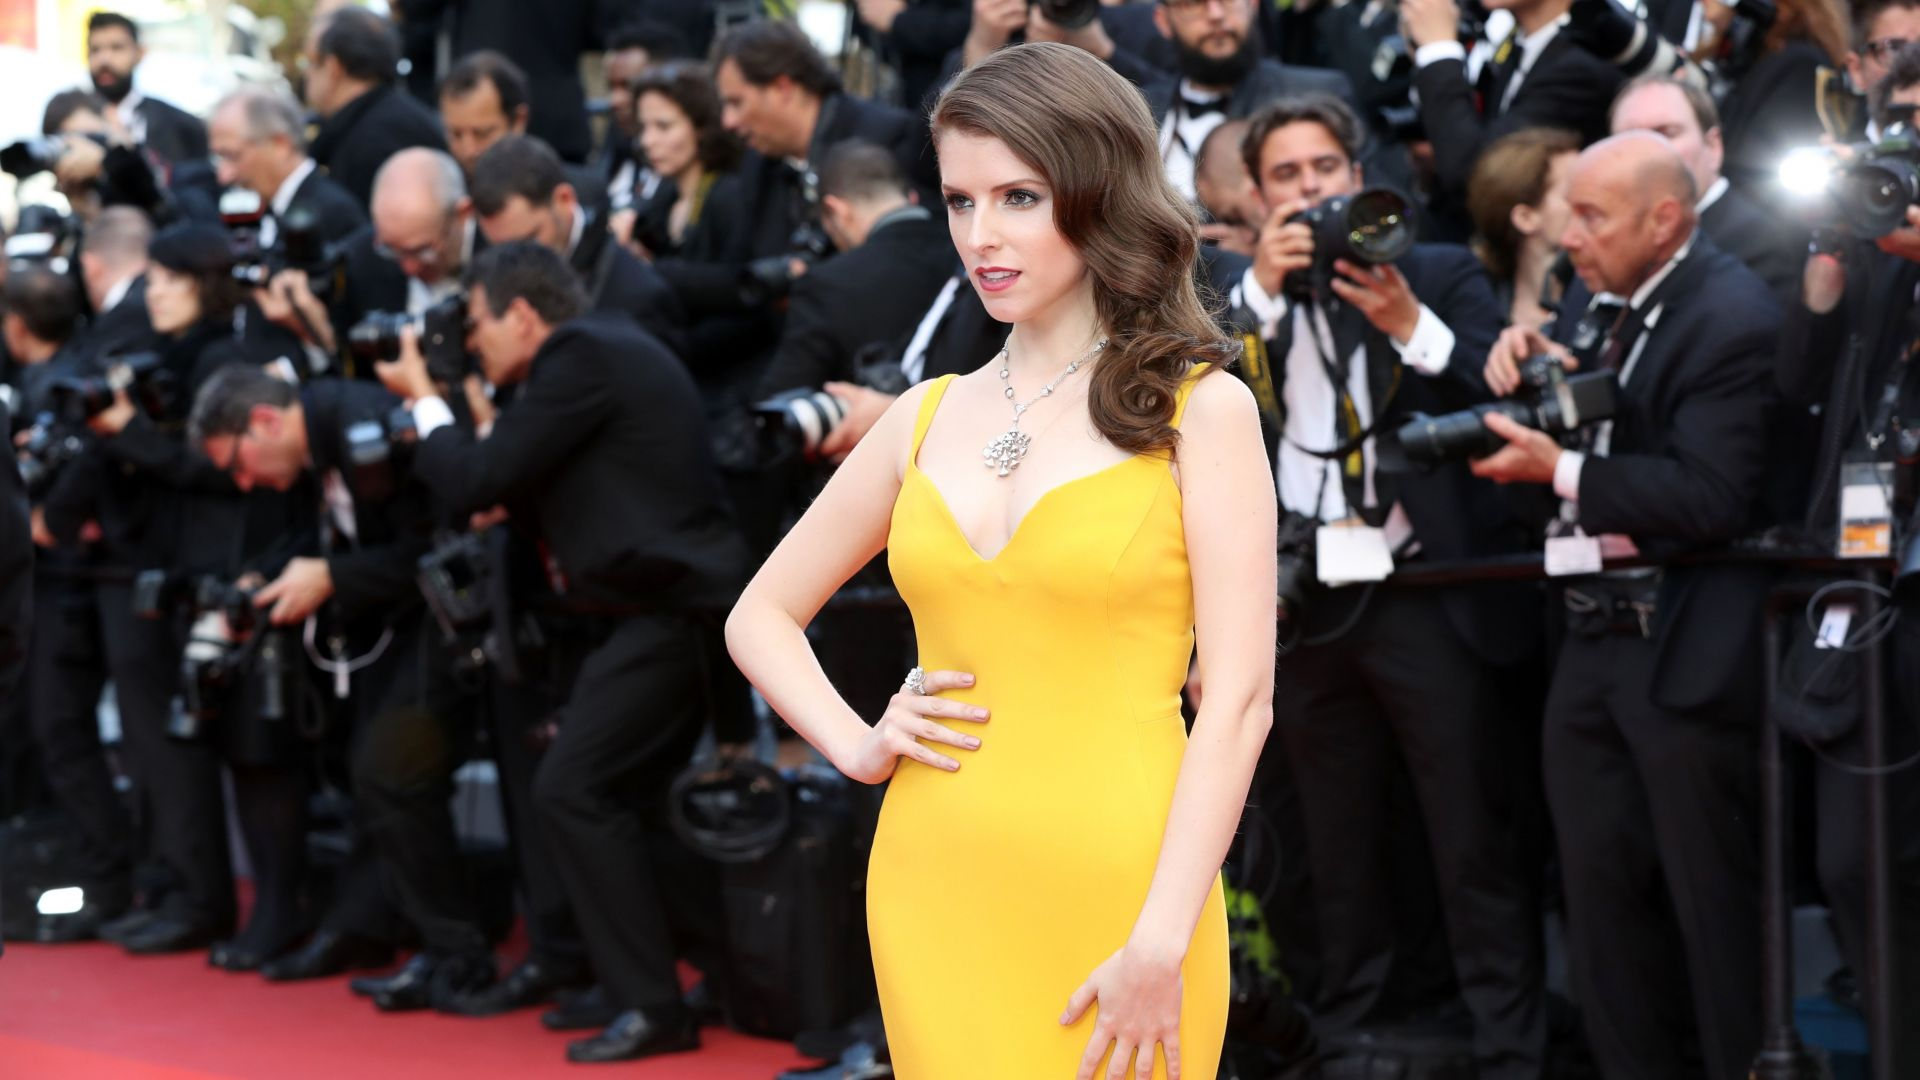 Анна Кендрик, Каннский кинофестиваль 2016, красная дорожка, Anna Kendrick, Cannes Film Festival 2016, Most popular celebs (horizontal)